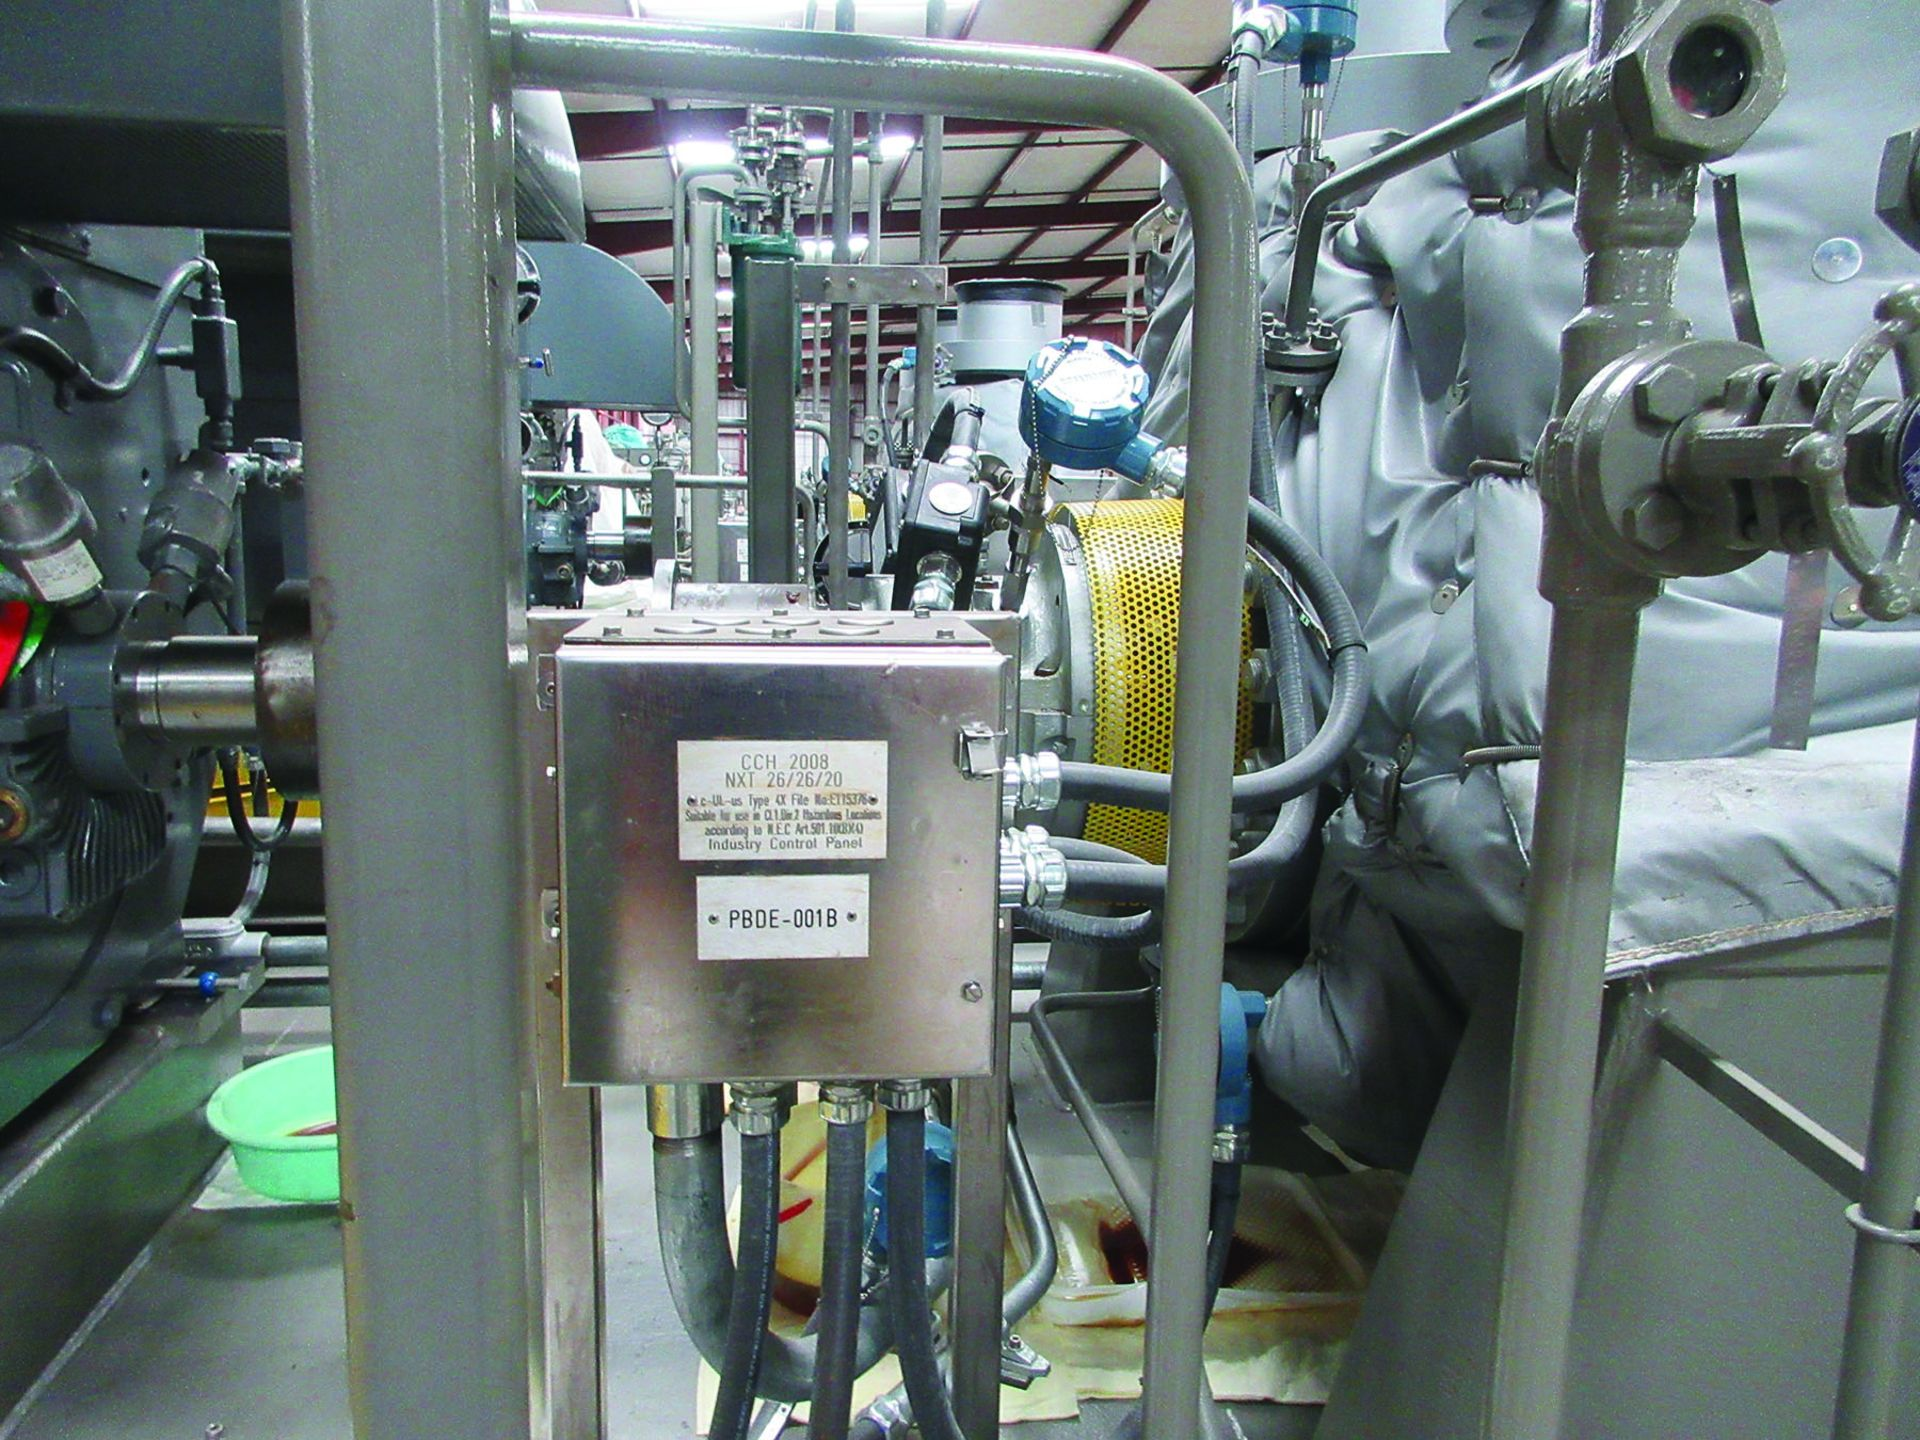 BOILER FEEDWATER BOOSTER PUMP SLED, GE 3,000 HP INDUCTION MOTOR 3585 RPM, 6600 VOLTS, 8313S FRAME, - Image 6 of 11